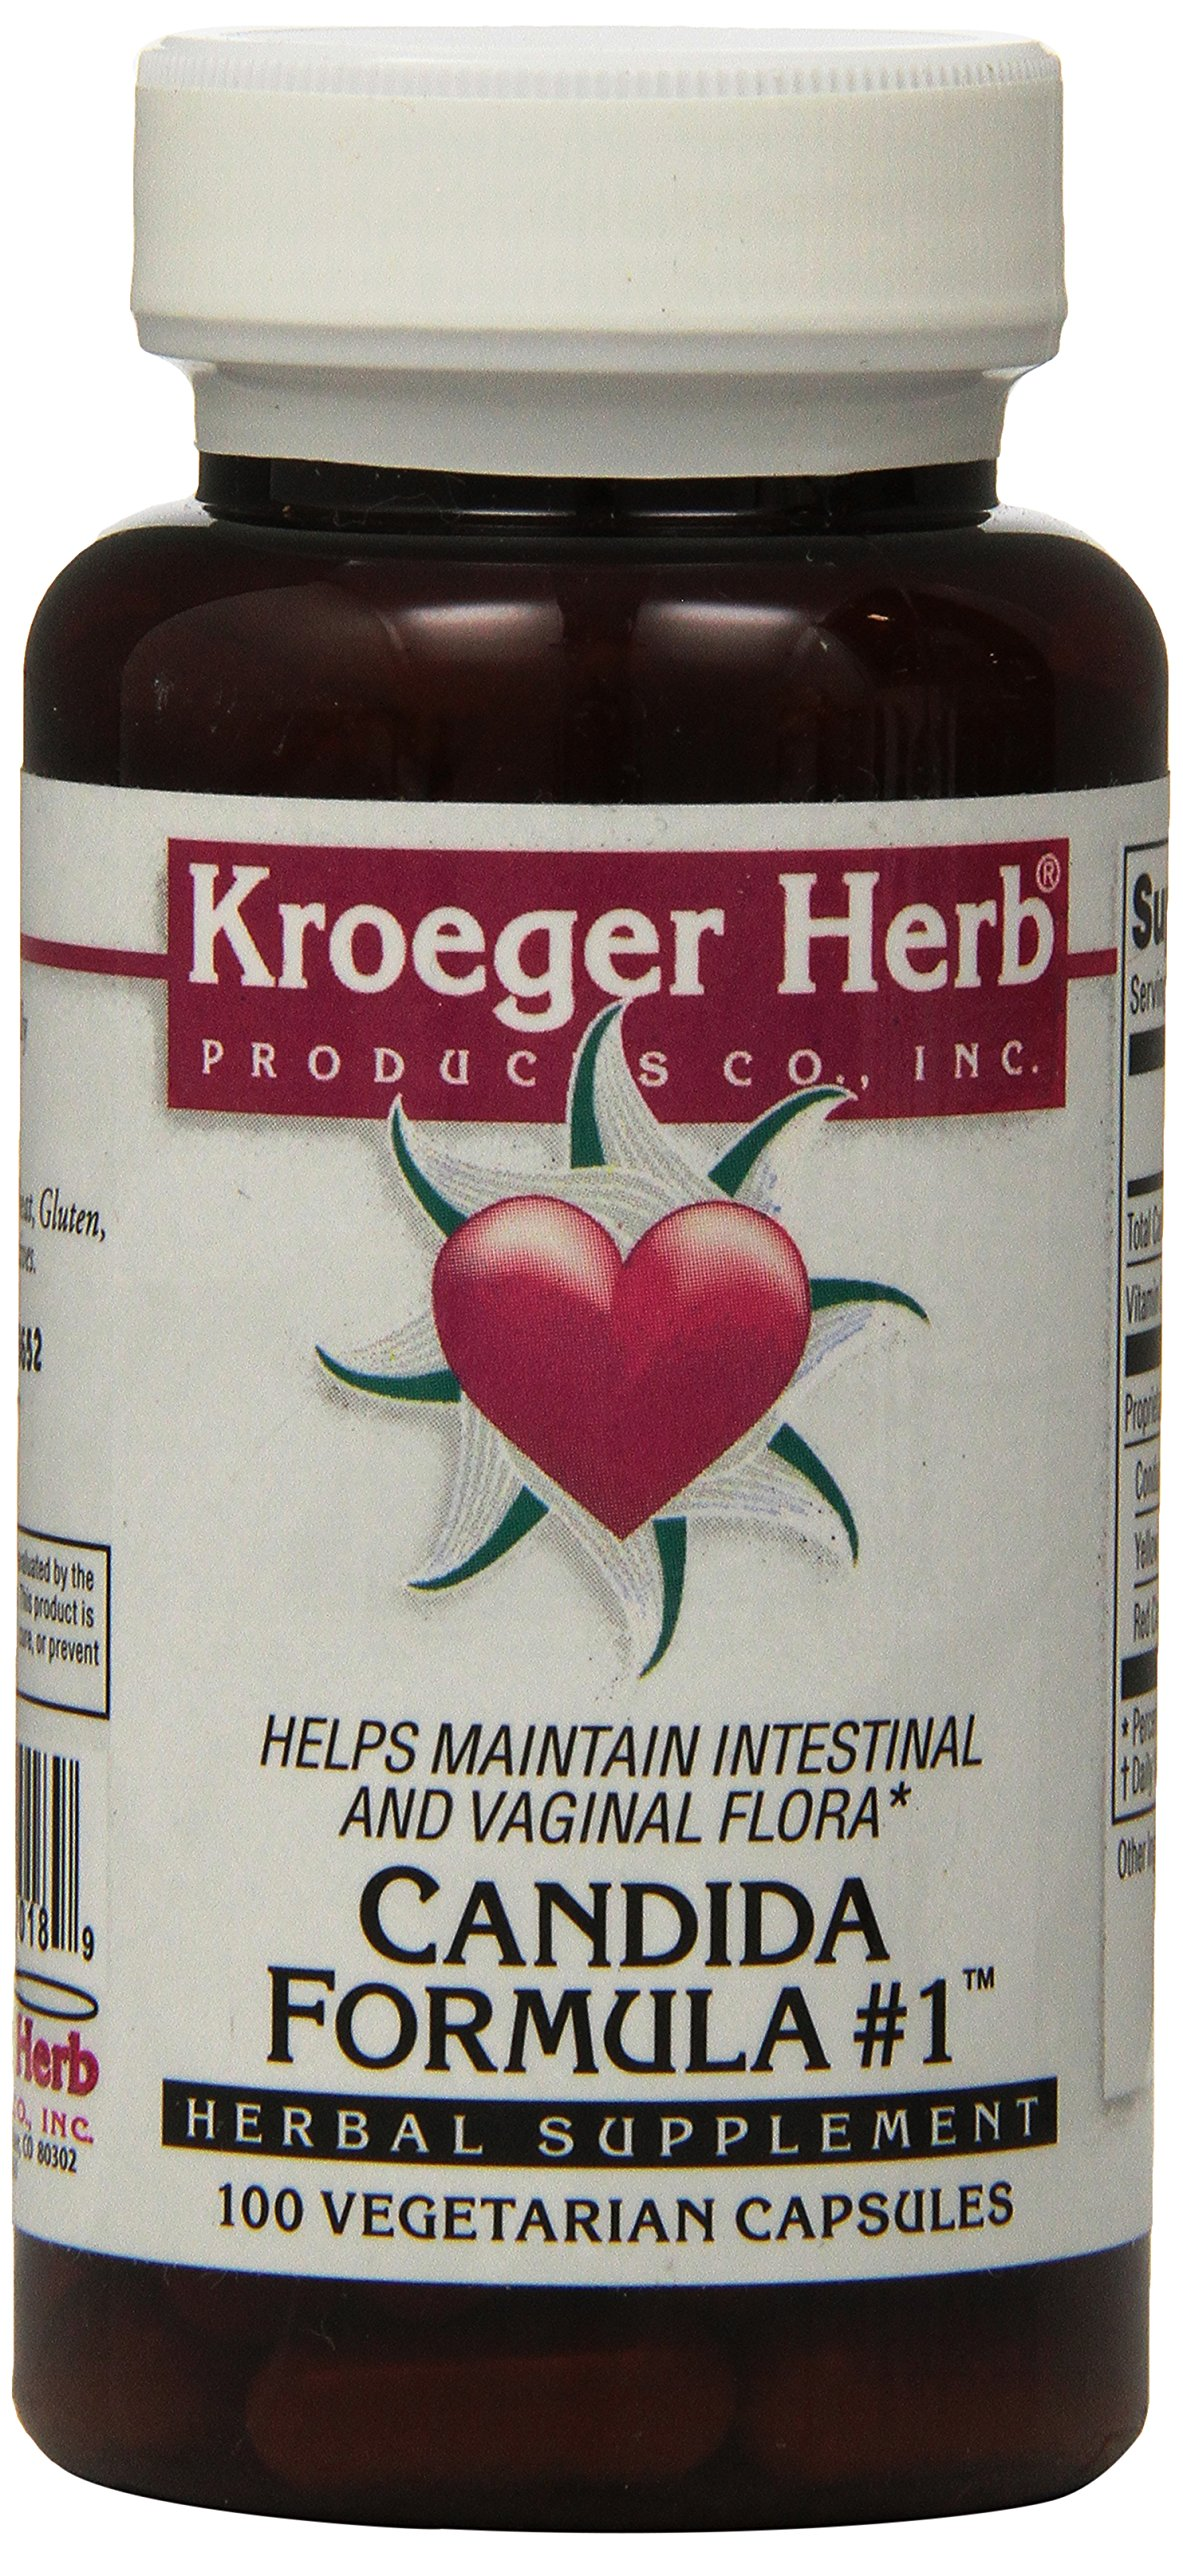 Kroeger Herb Candida Formula No 1 Capsules, 100 Count by Kroeger Herb Products